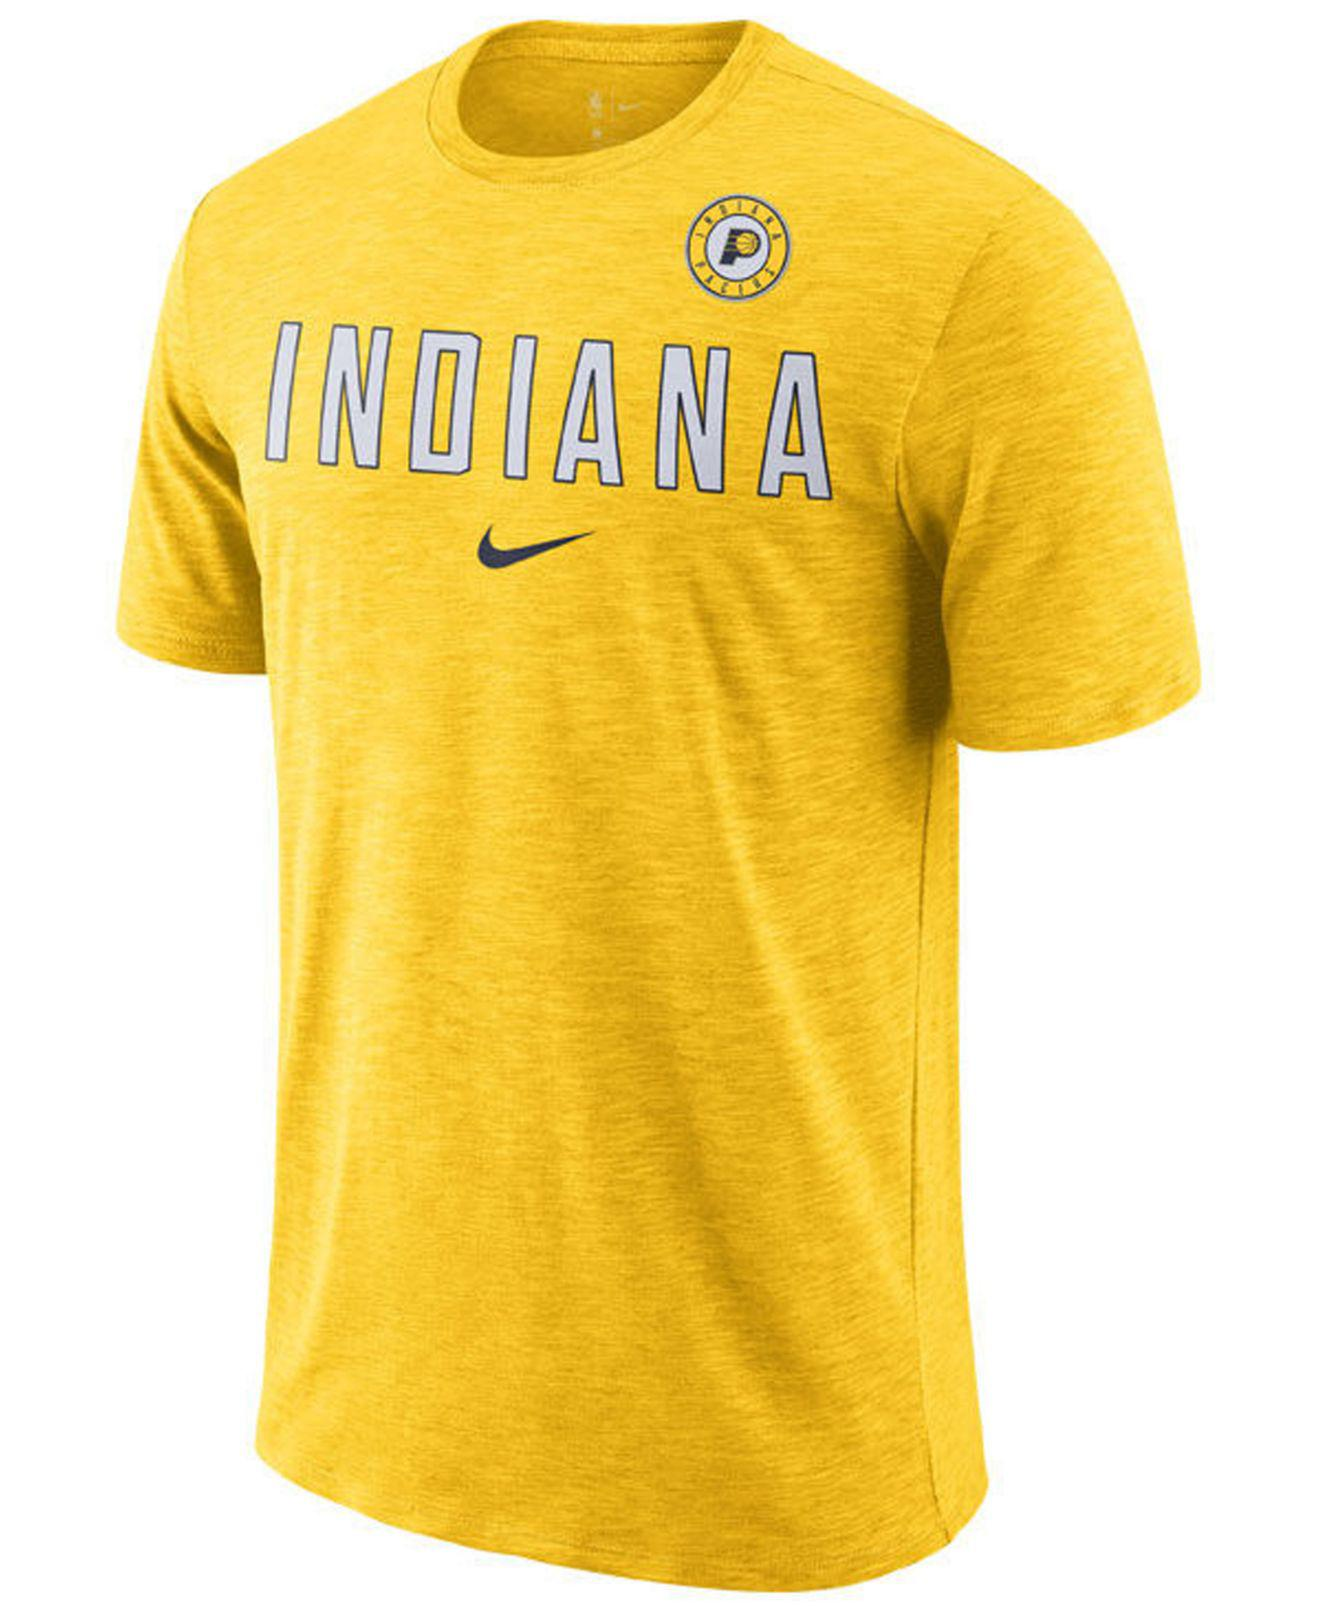 Lyst - Nike Indiana Pacers Essential Facility T-shirt in Yellow for Men 8f3baaa44